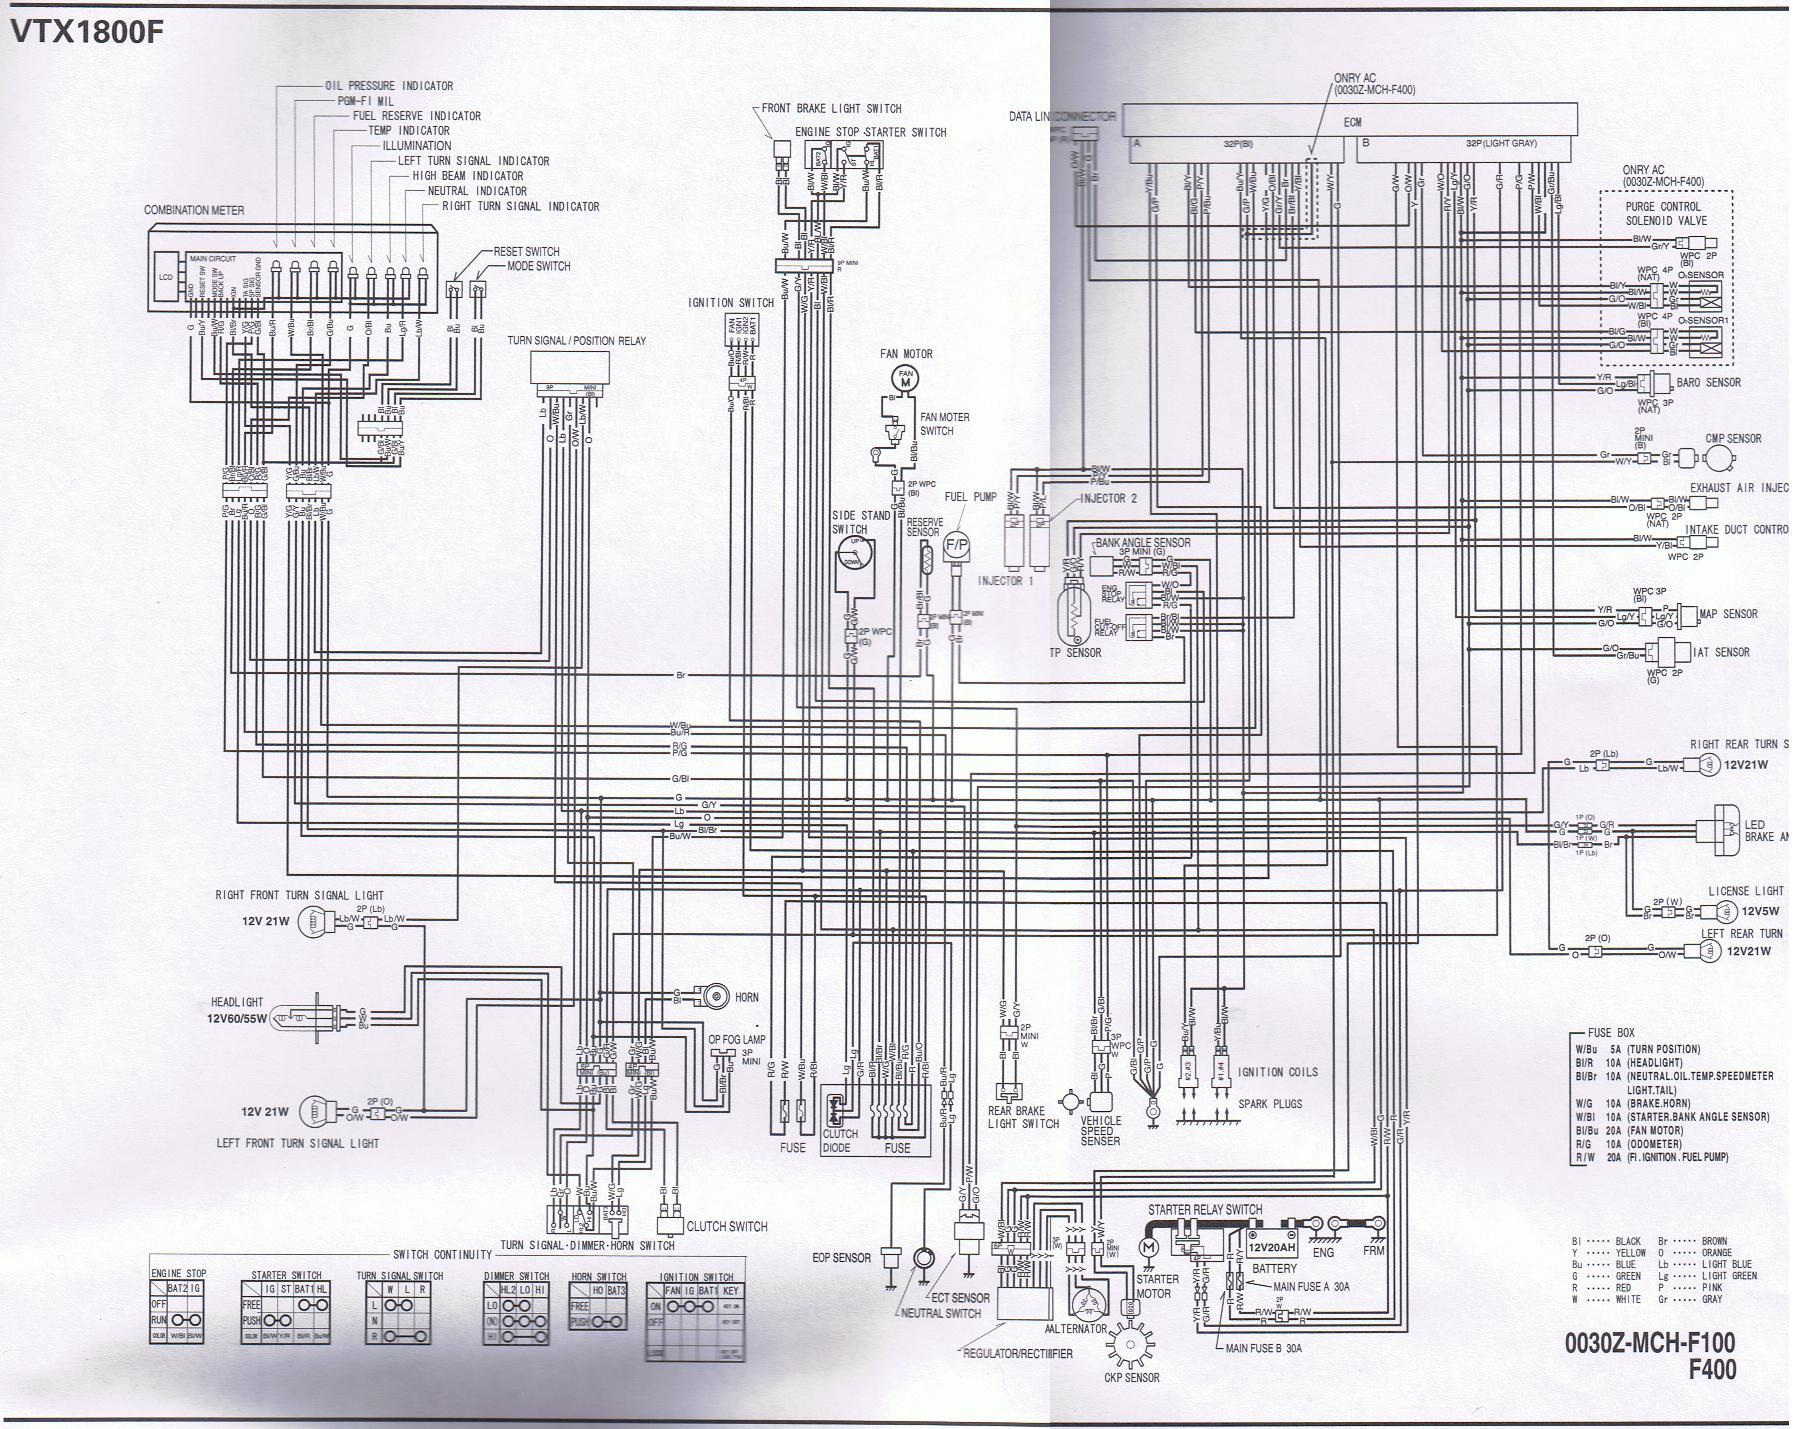 05+_VTX1800_F_schematic motorcycle wire schematics bareass choppers motorcycle tech pages  at bayanpartner.co